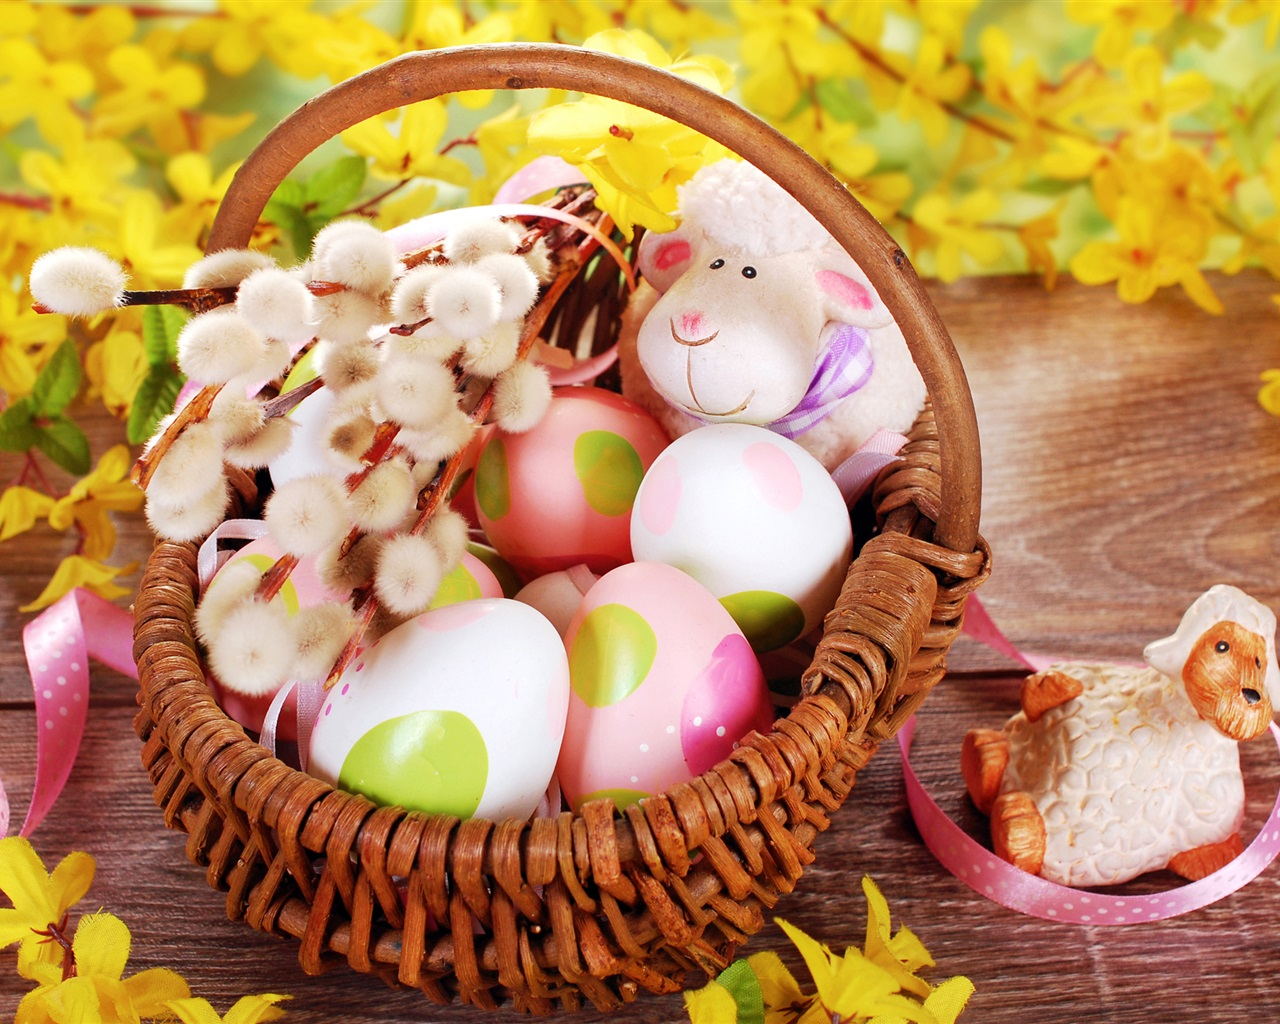 Pin bild ostern wallpapers and stock photos on pinterest - Ostern wallpaper ...